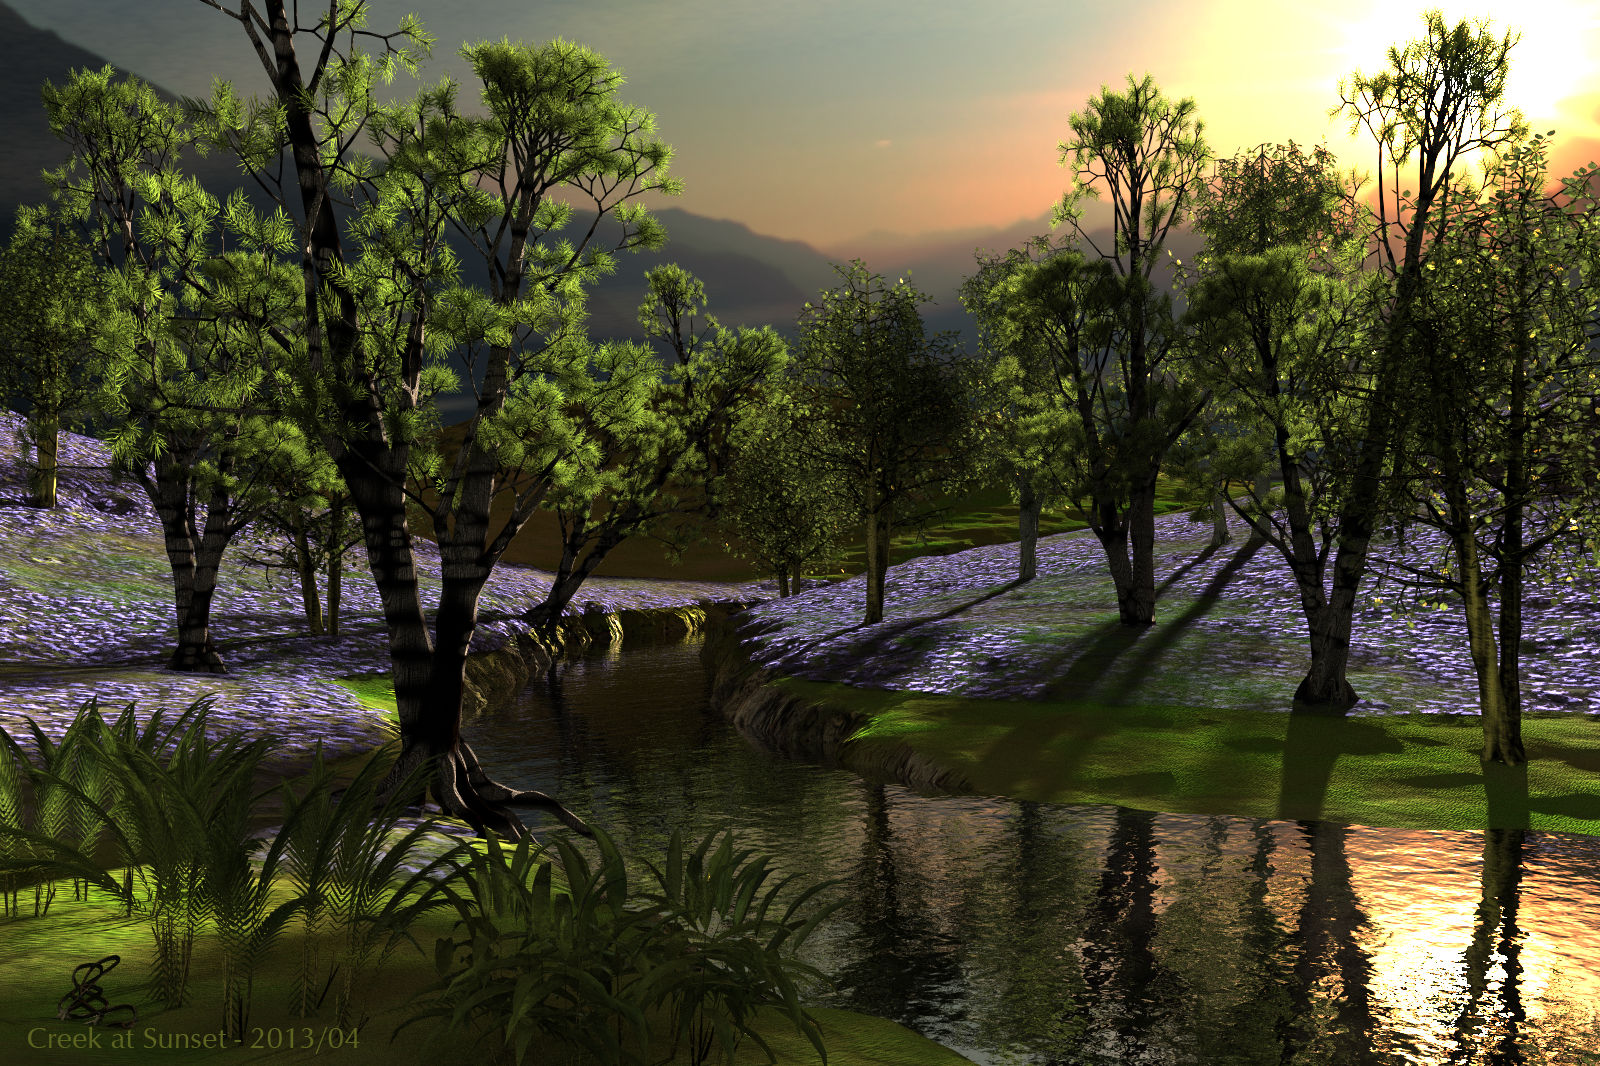 Creek at Sunset - Bryce 3D render by Horo